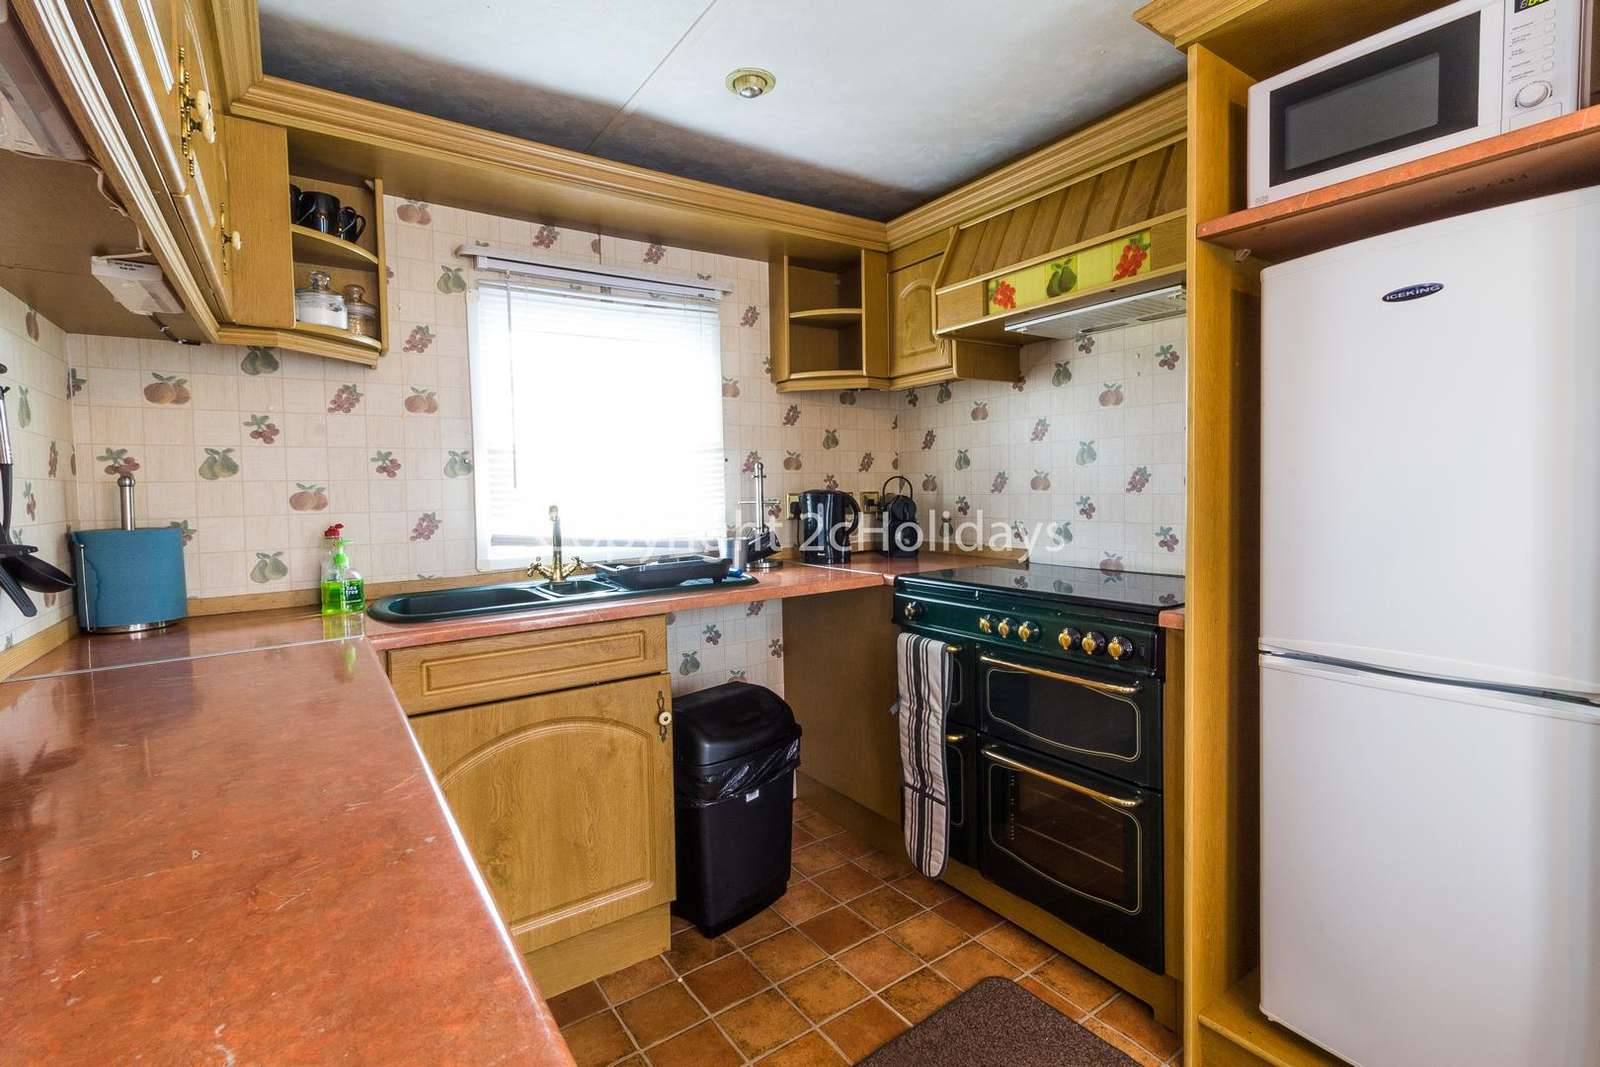 This kitchen includes a full size oven/hob and full size fridge/freezer!